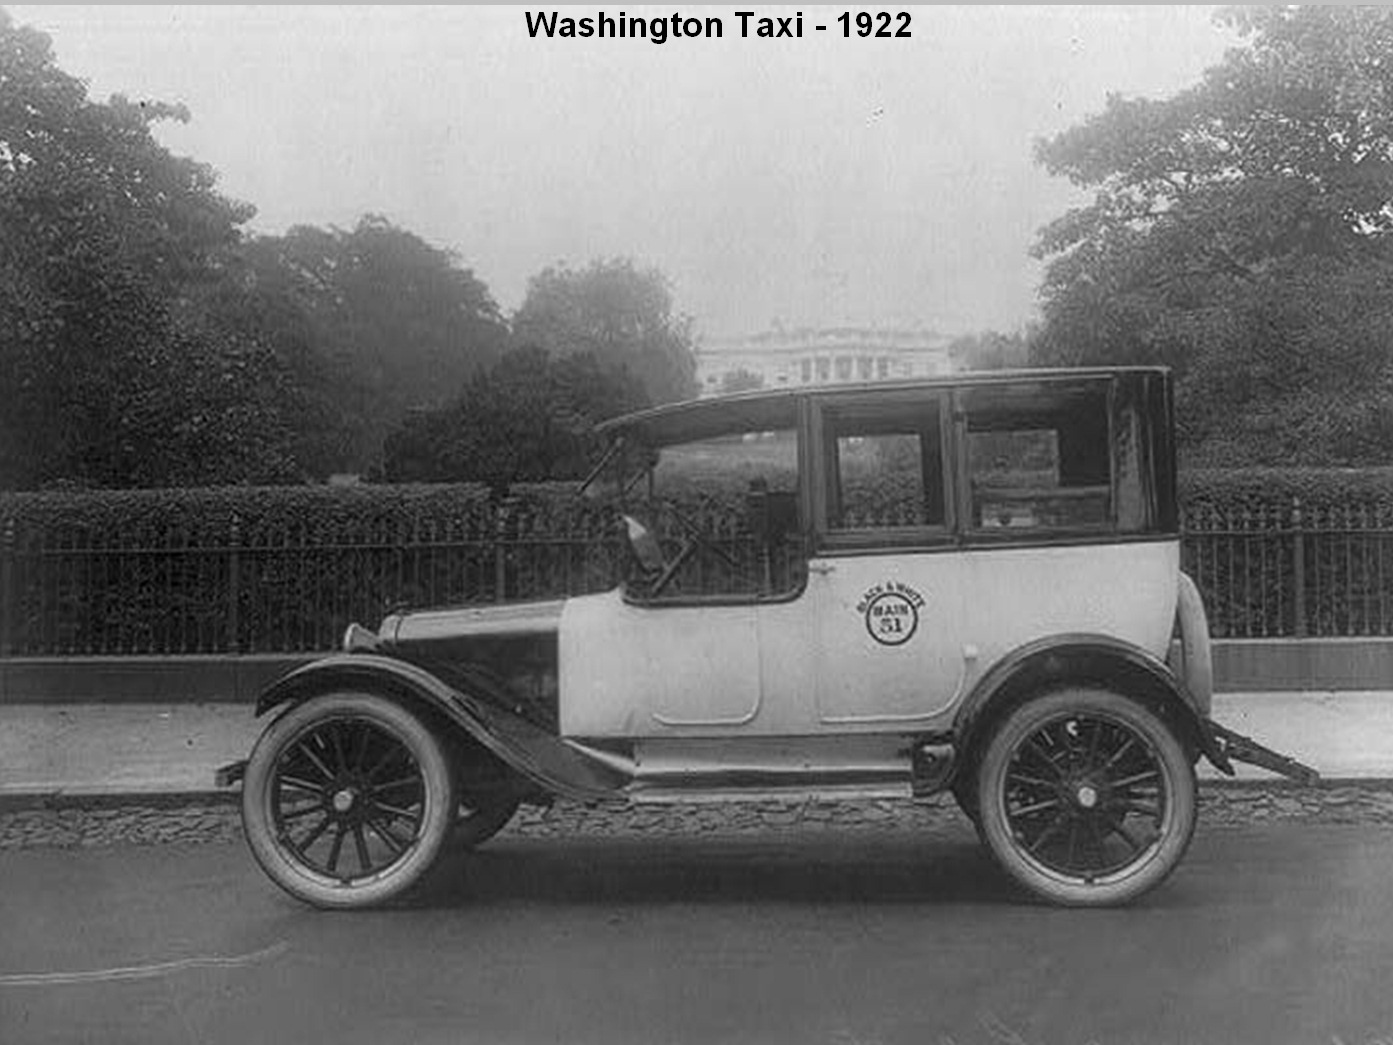 A cab in front of the White House